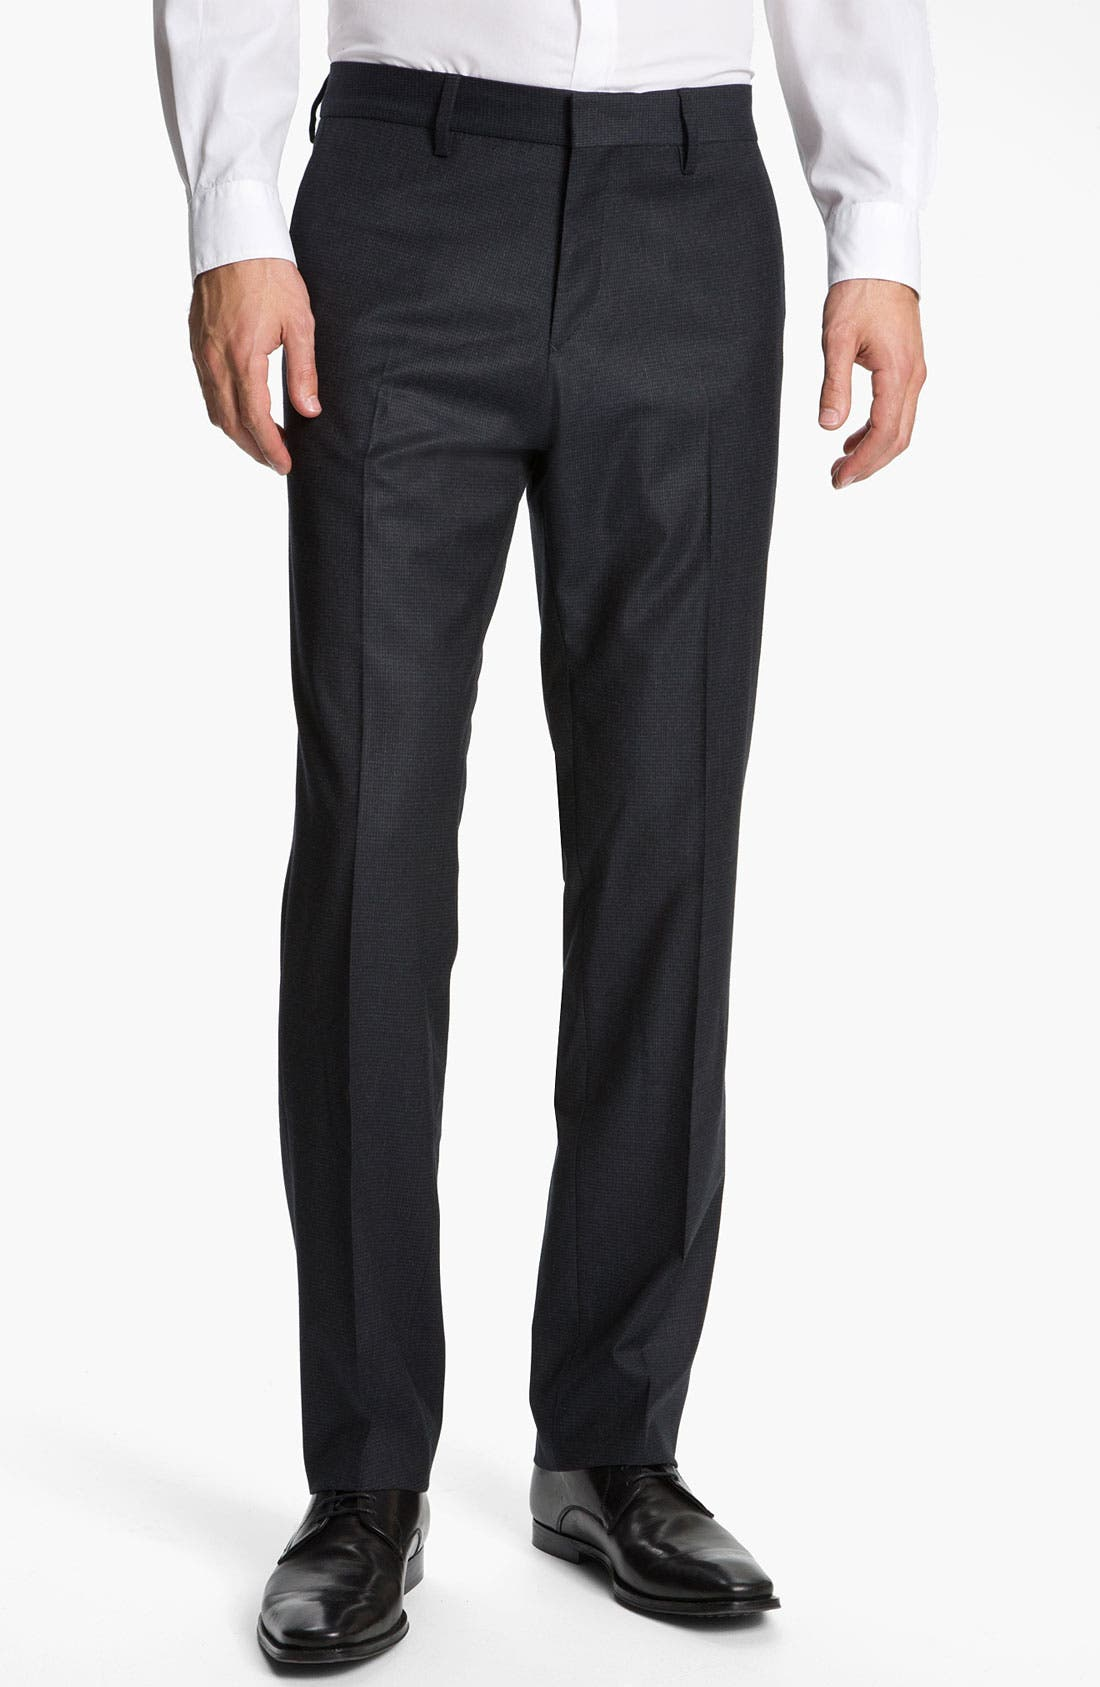 Alternate Image 1 Selected - BOSS Black 'Crigan' Flat Front Trousers